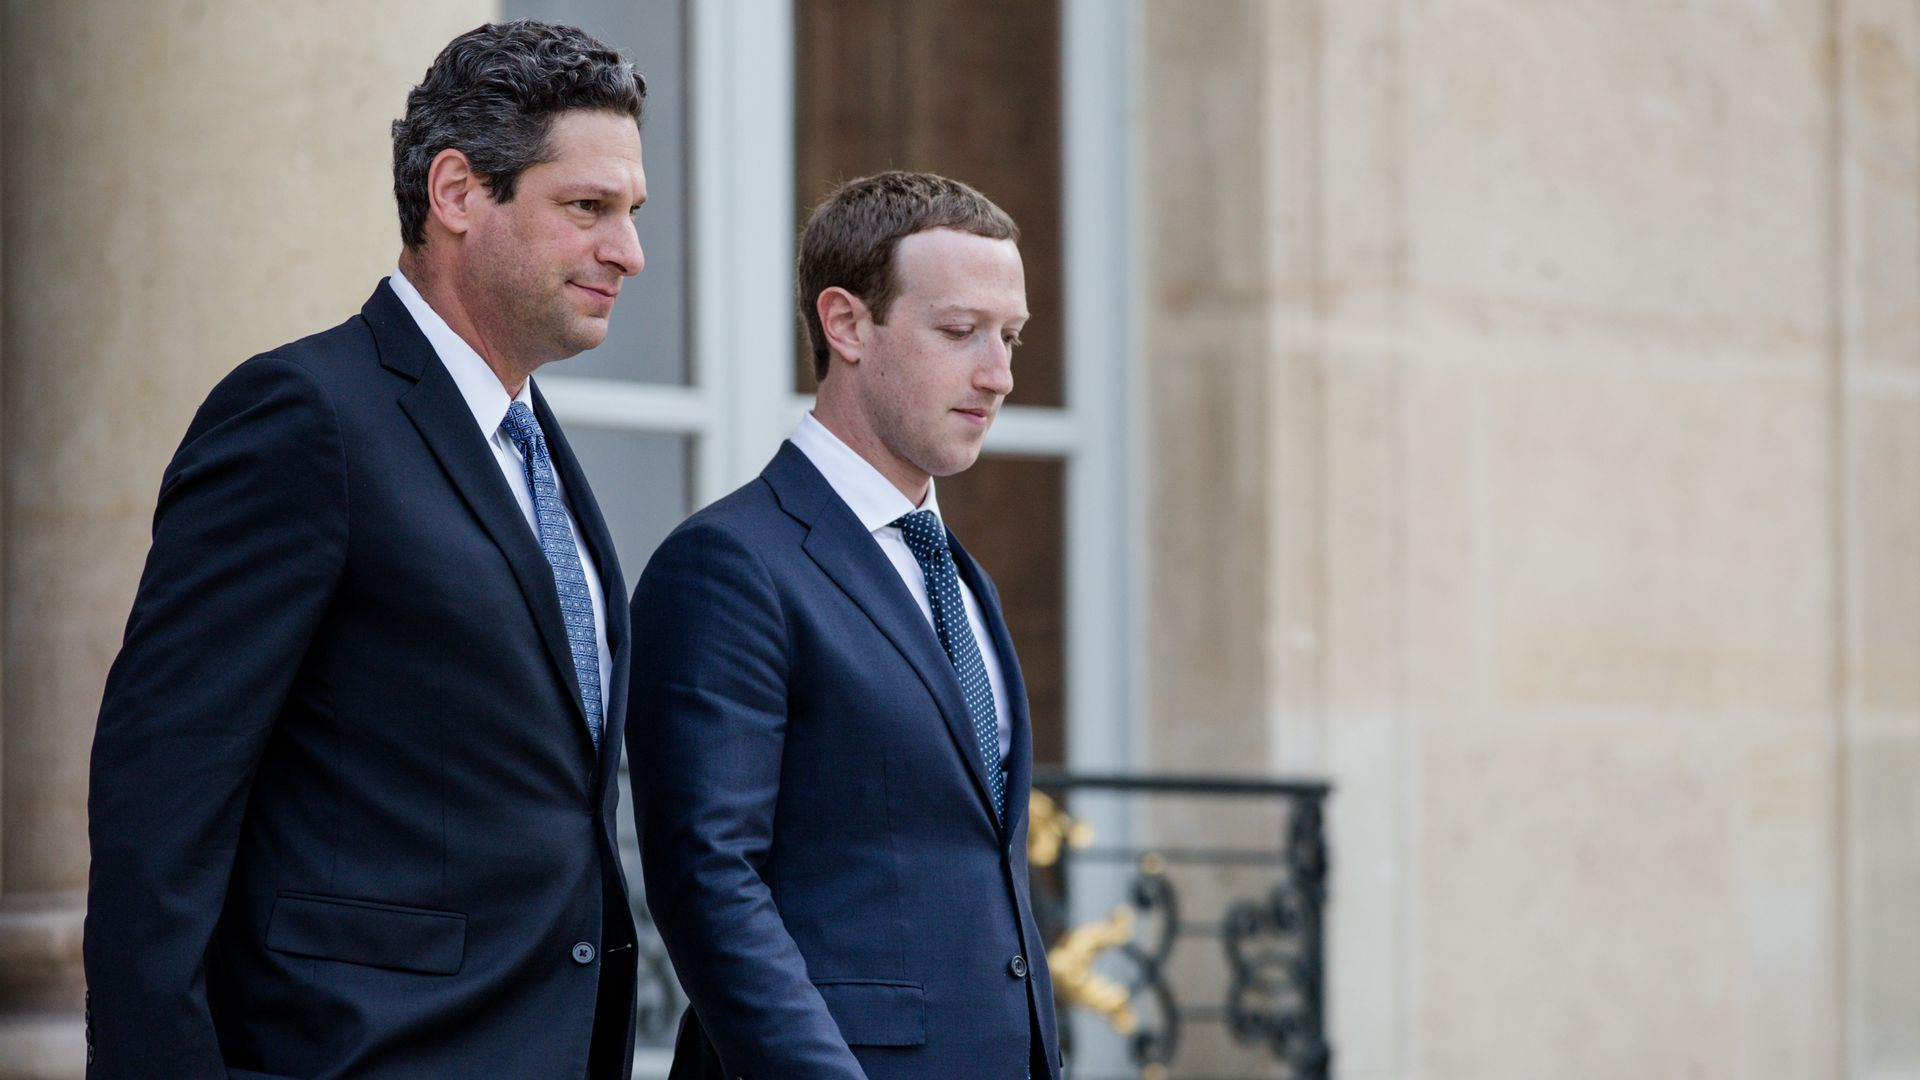 Joel Kaplan and Mark Zuckerberg walking